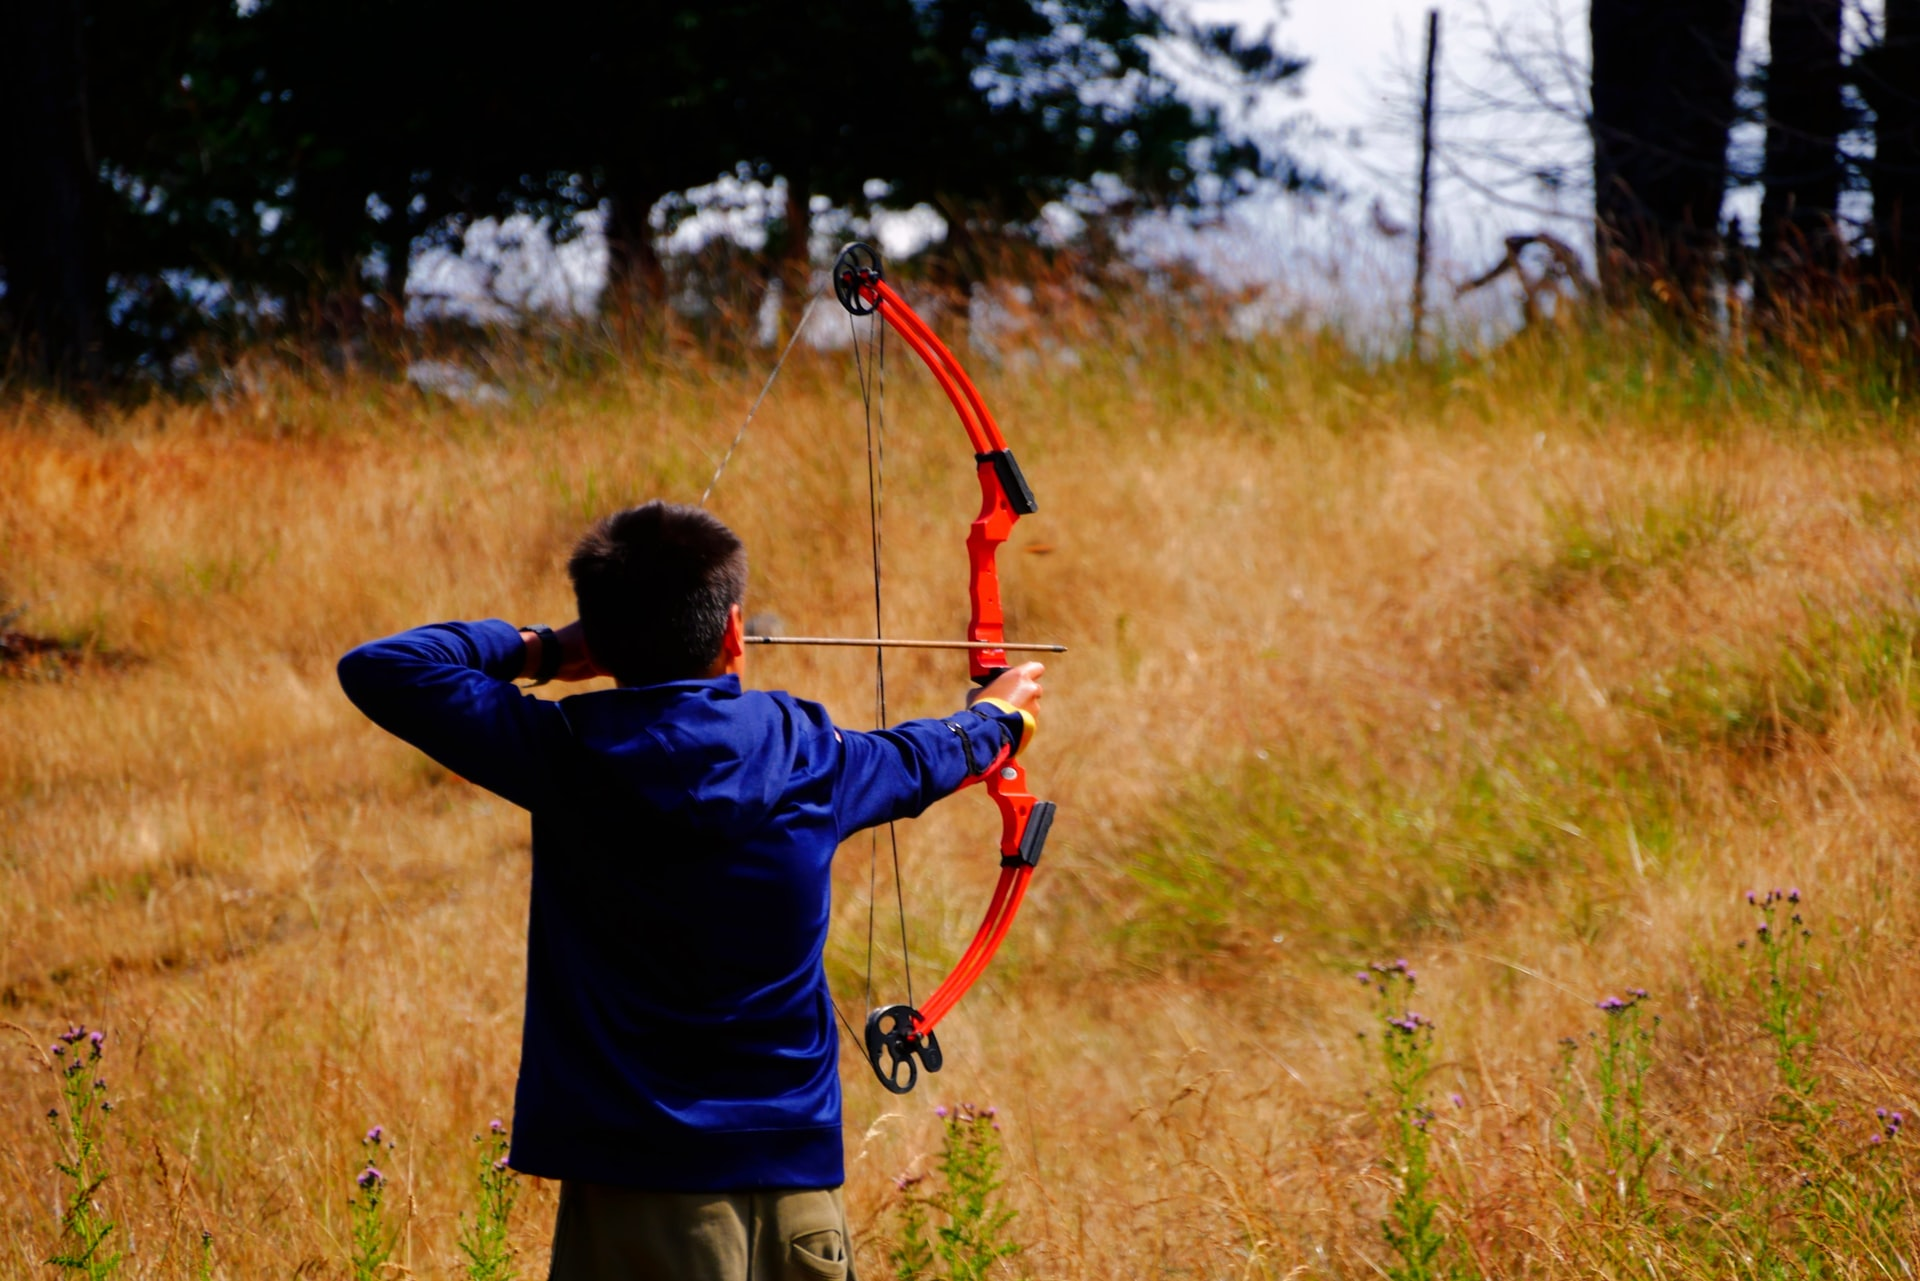 A detailed guide on primary archery bows.